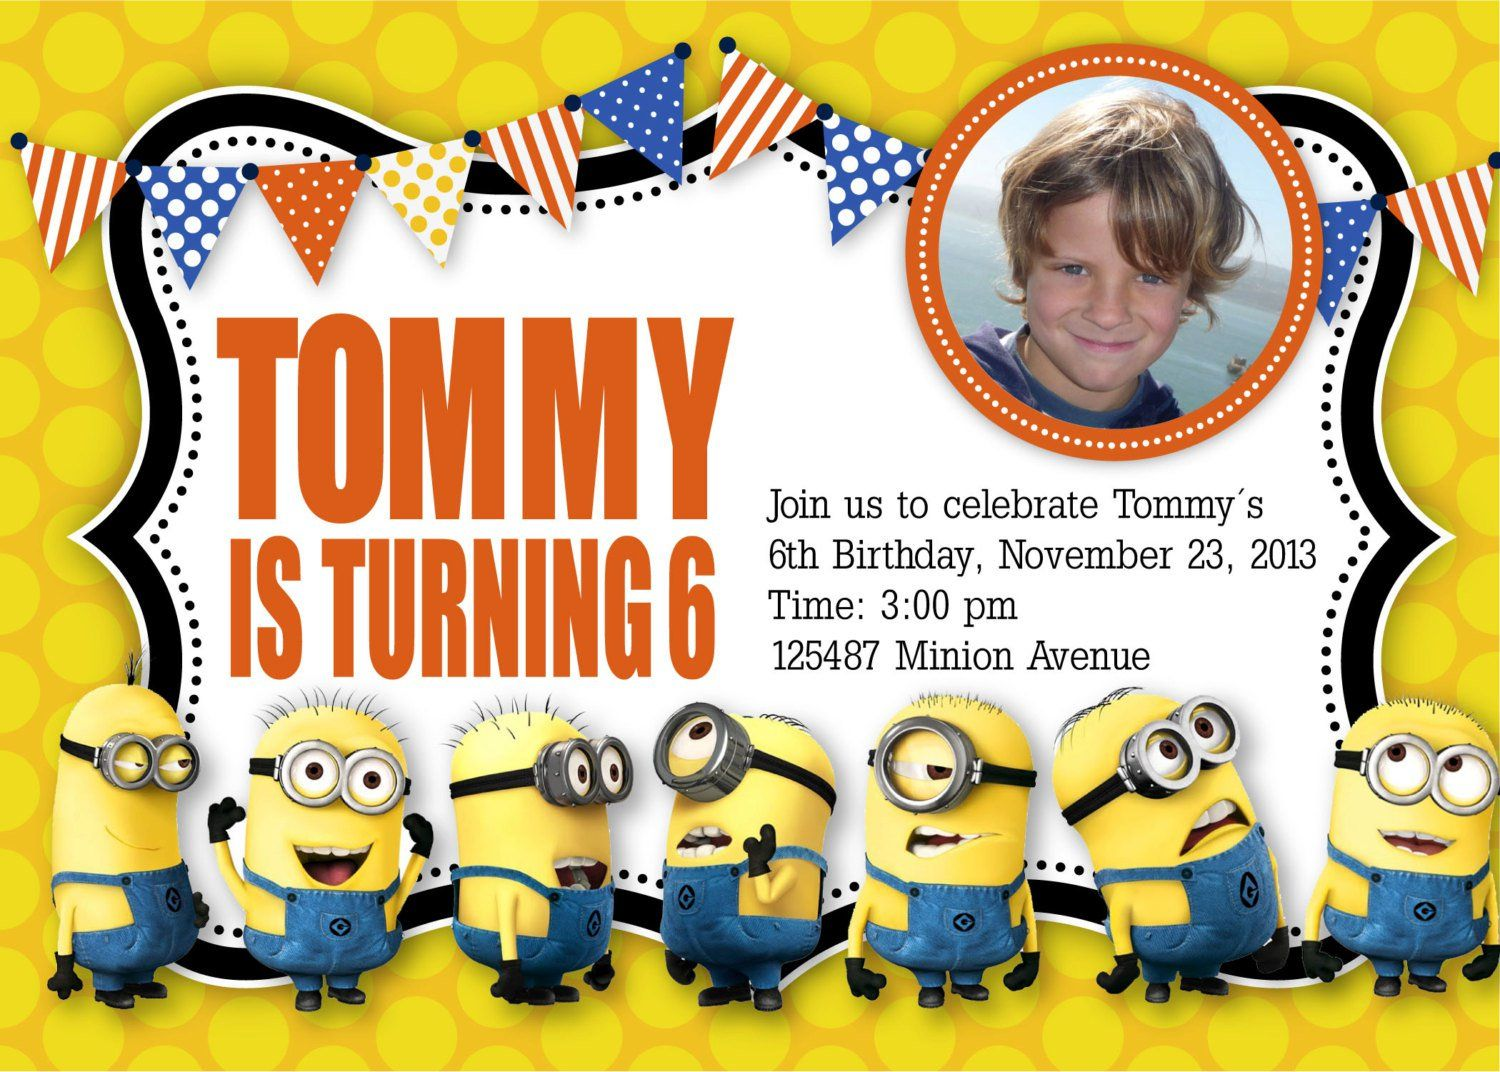 The Terrific Minion Birthday Invitations Minion Birthday Invitations Inside Minion Card Templat Minion Birthday Invitations Minion Invitation Minion Birthday